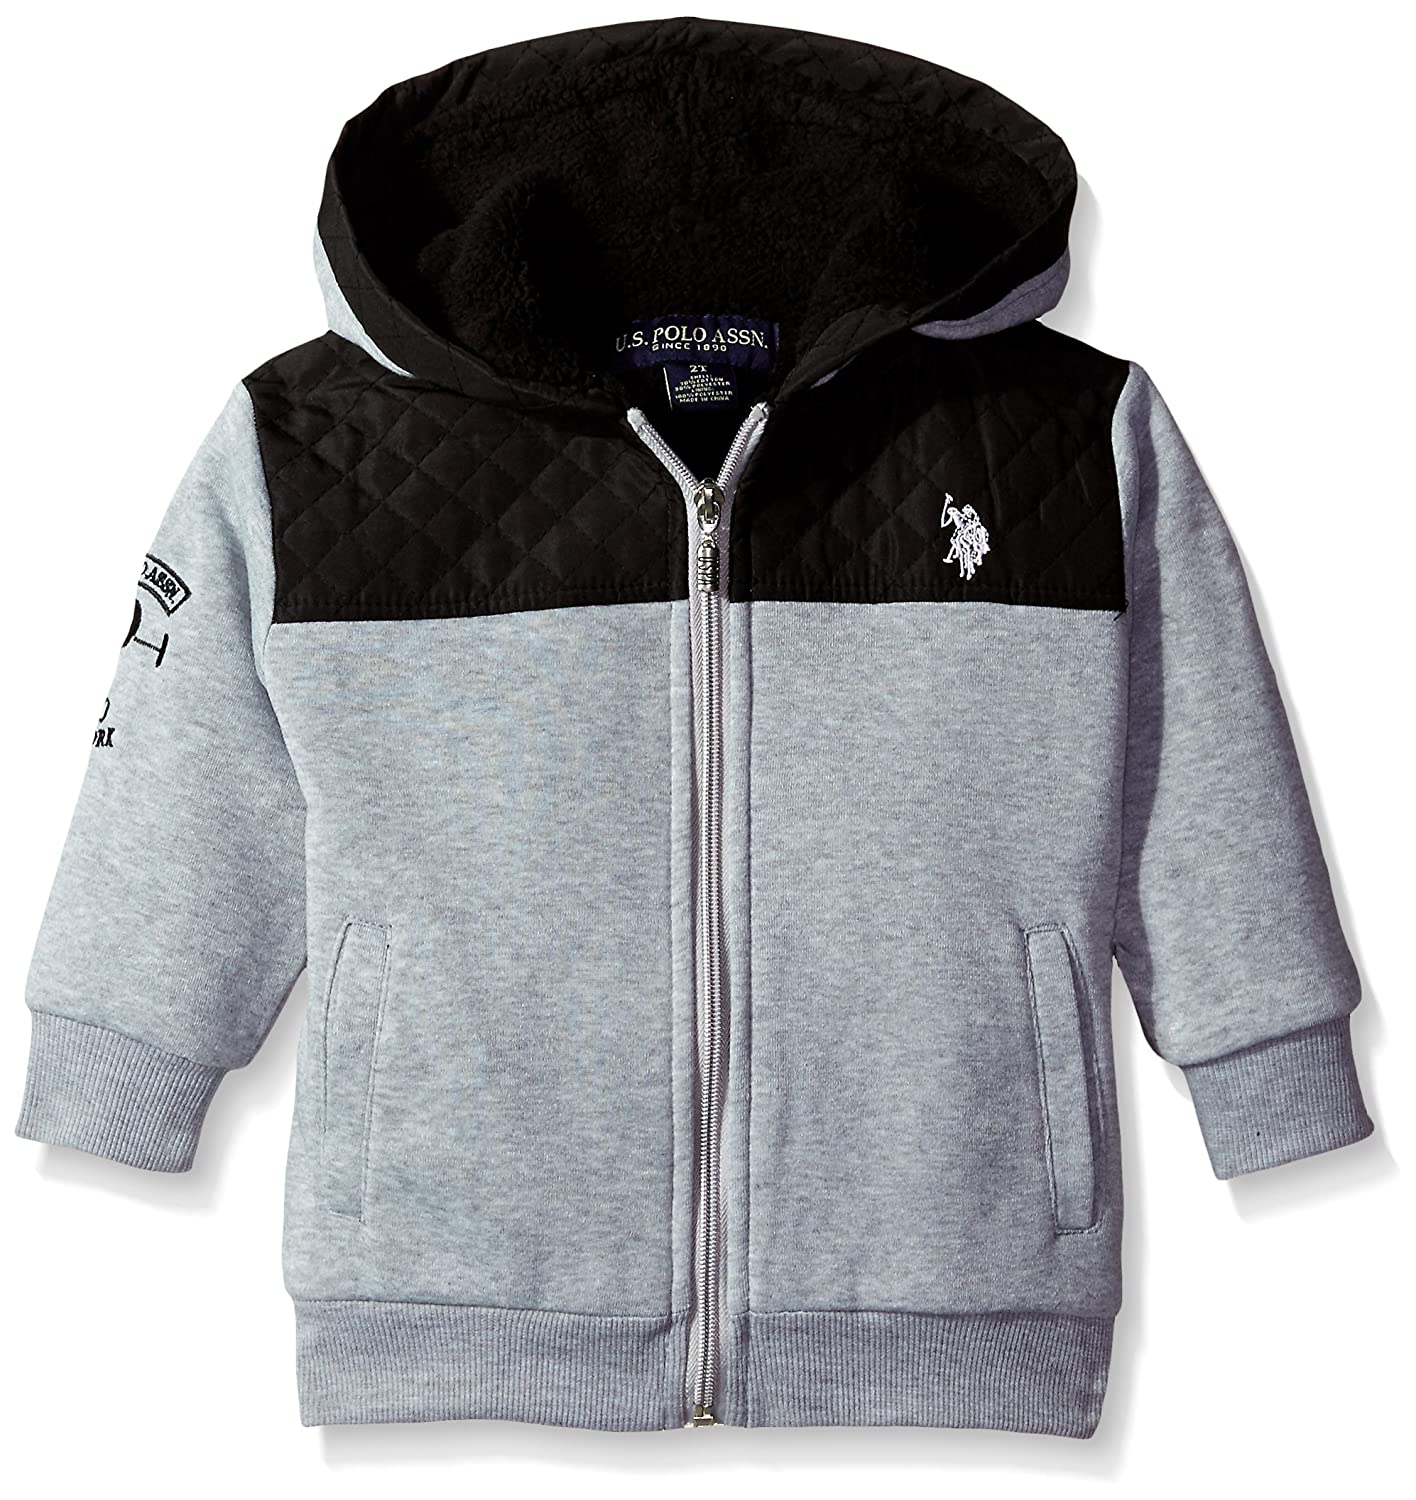 U.S. Polo Assn. Boys' Sherpa Lined Fleece Hooded Jacket US Polo Association Boys 8-20 IX00